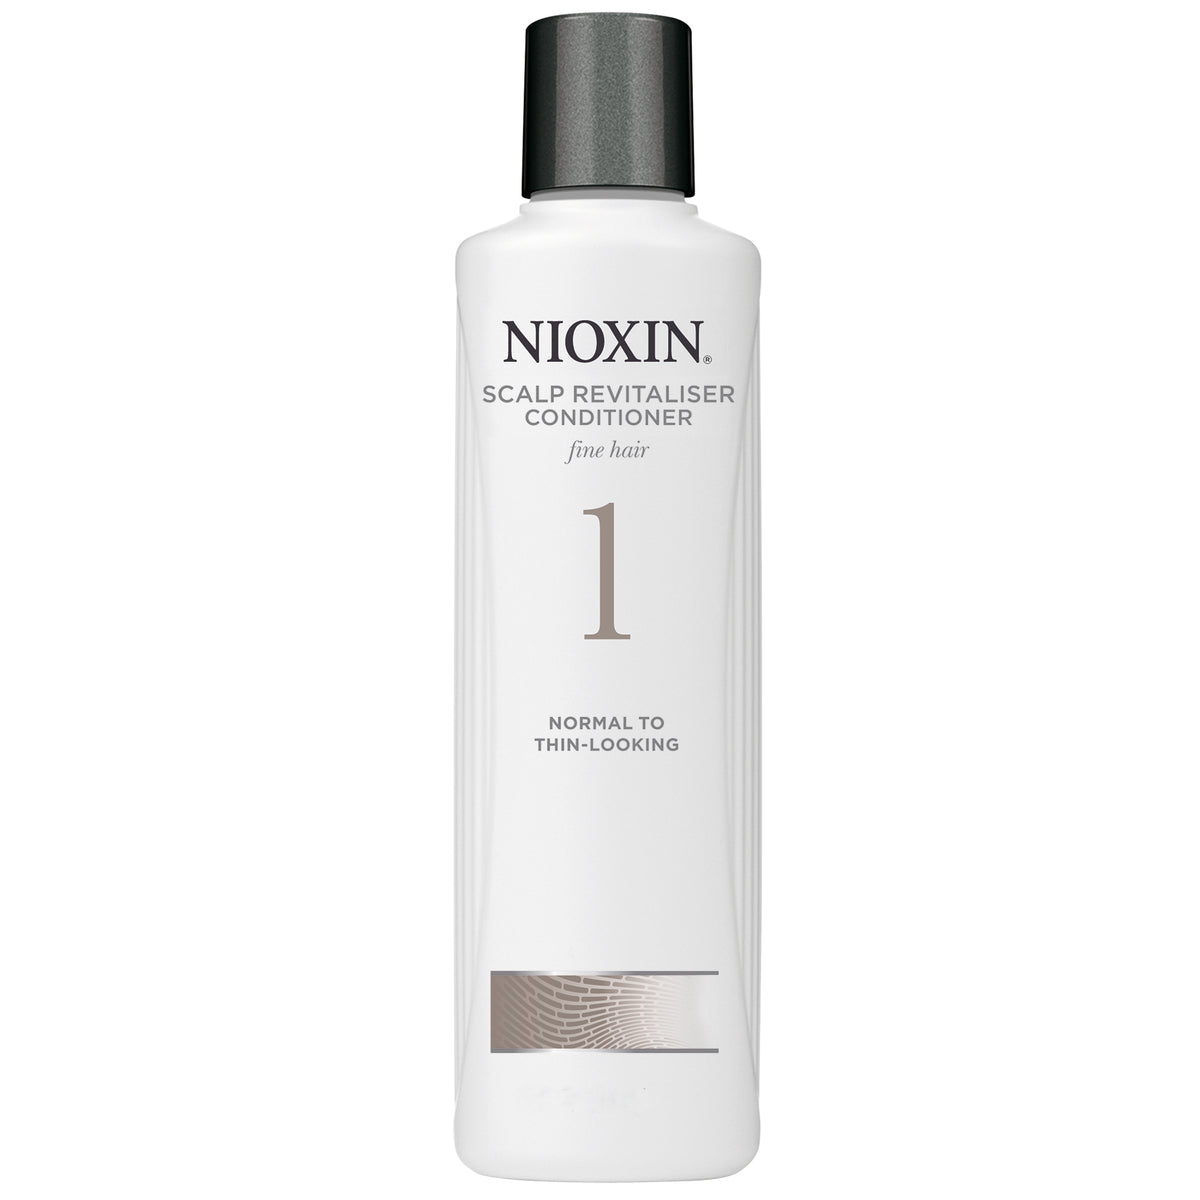 Nioxin Hair | Scalp Revitaliser Conditioner 300ml